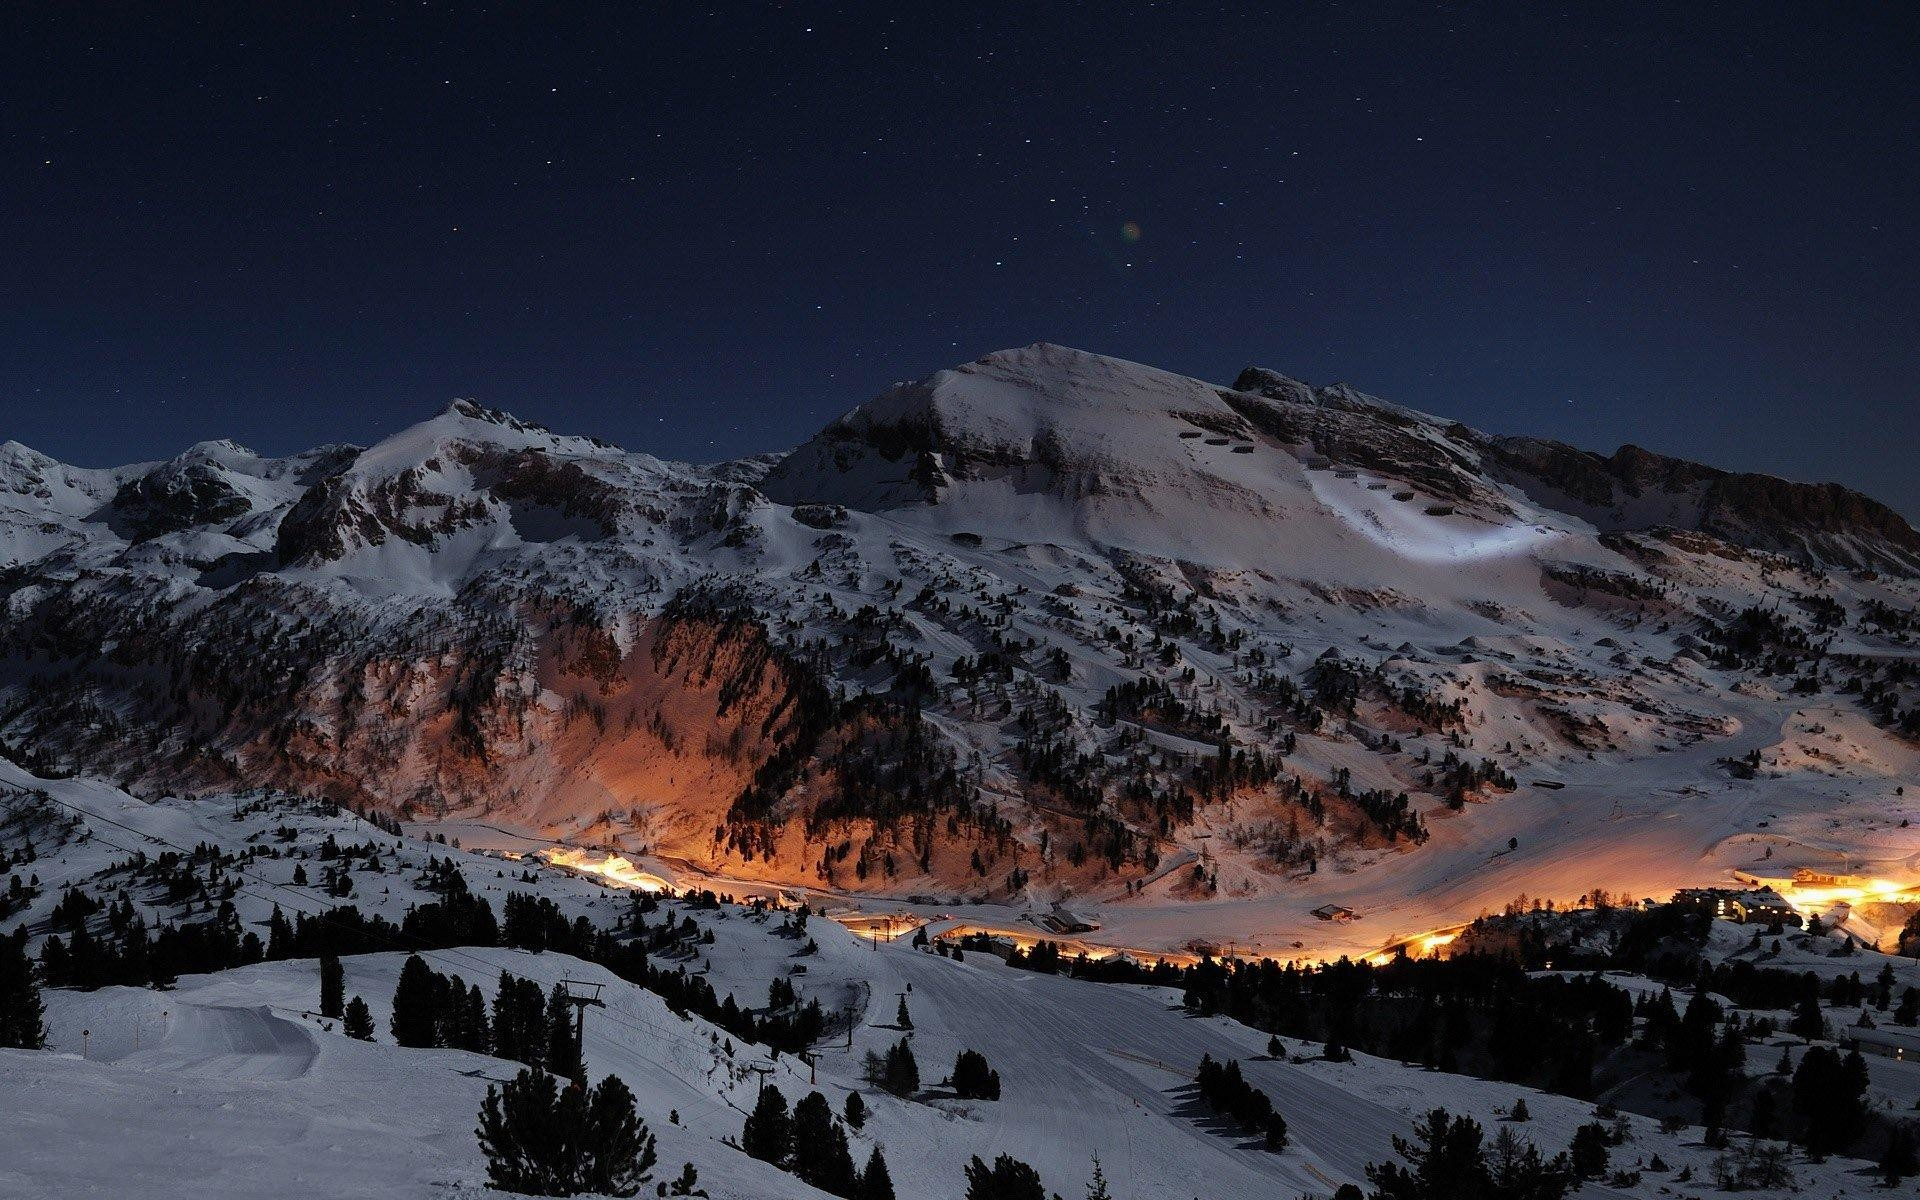 wallpaper.wiki-Snowy-Mountains-Picture-Download-Free-PIC-